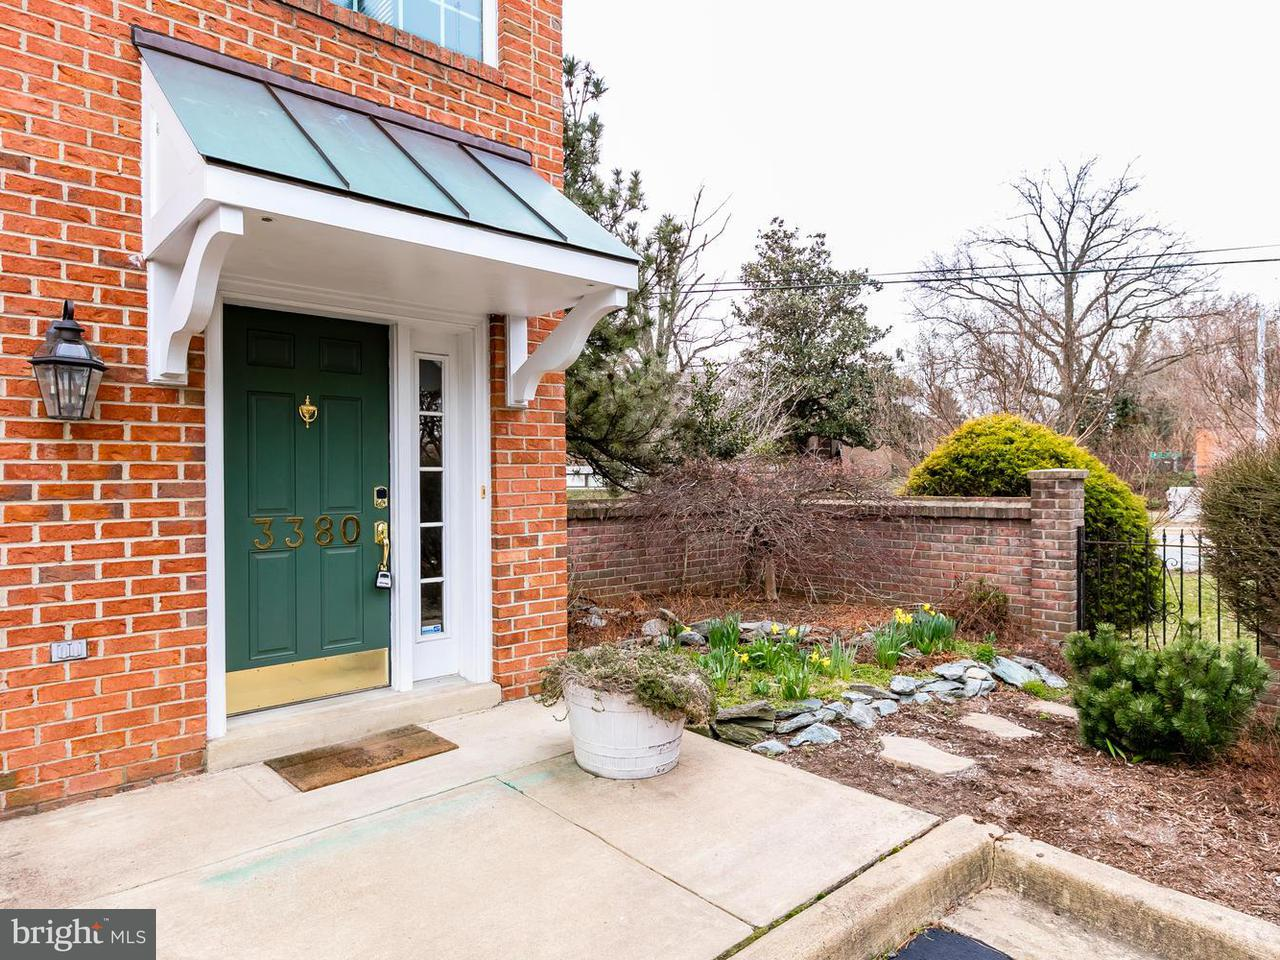 Townhouse for Sale at 3380 5th St S 3380 5th St S Arlington, Virginia 22204 United States